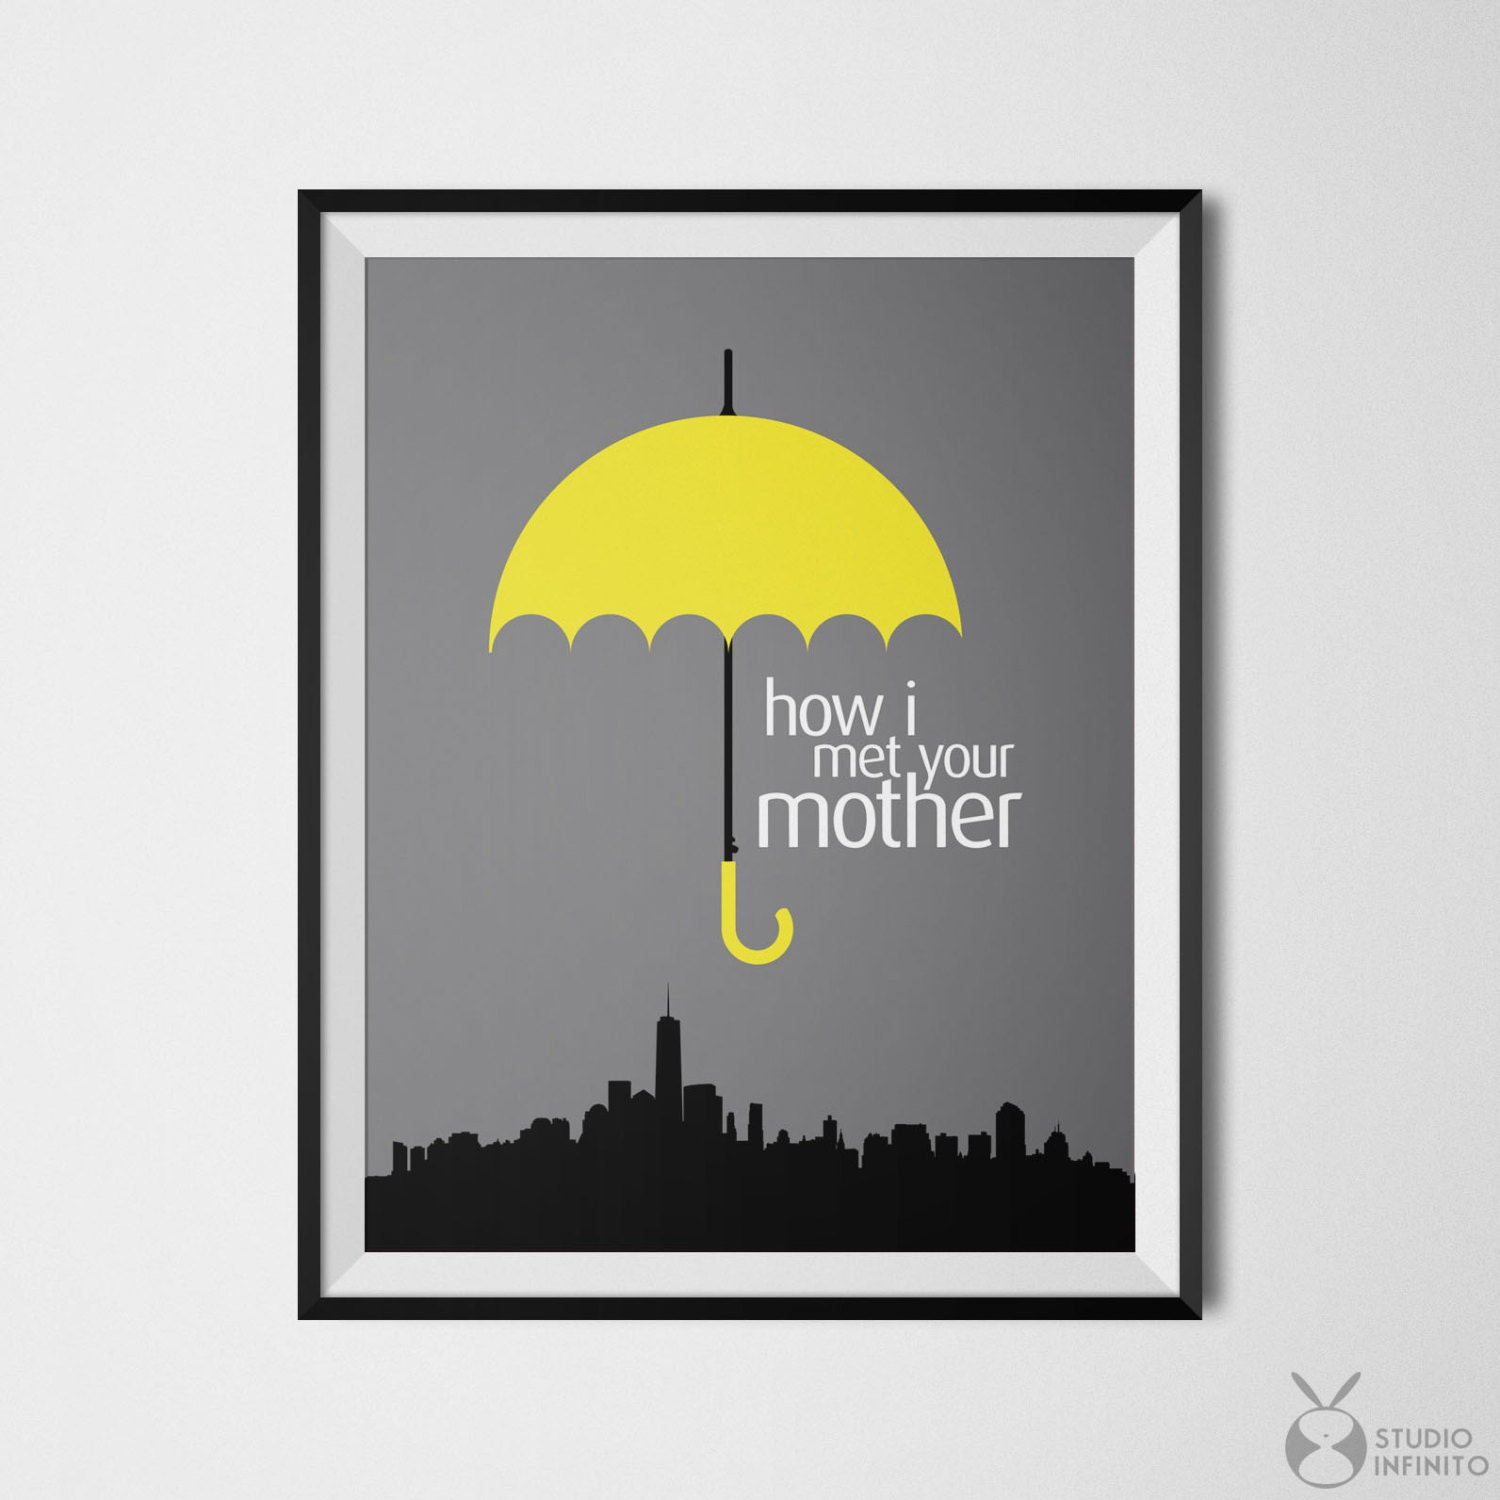 how i met your mother poster print barney stinson ted mosby